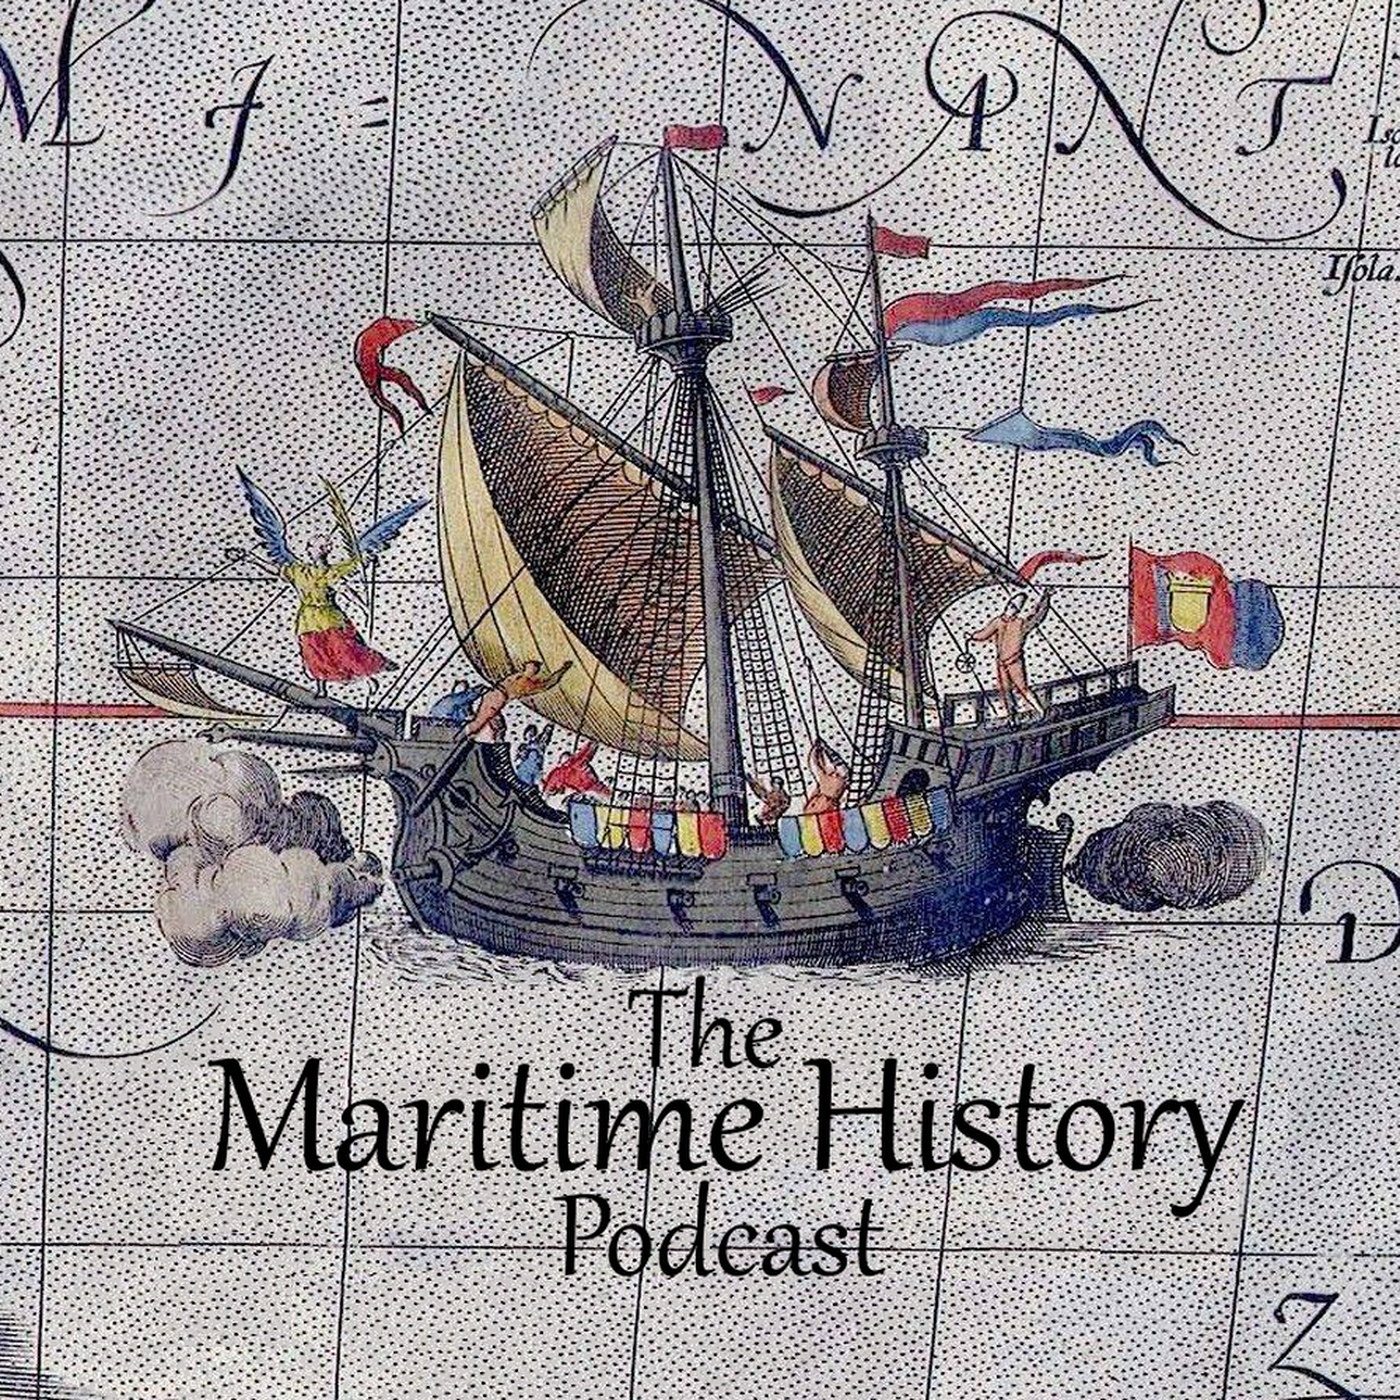 Guest Ep. - Grace Dieu and Henry V's Proto-Royal Navy